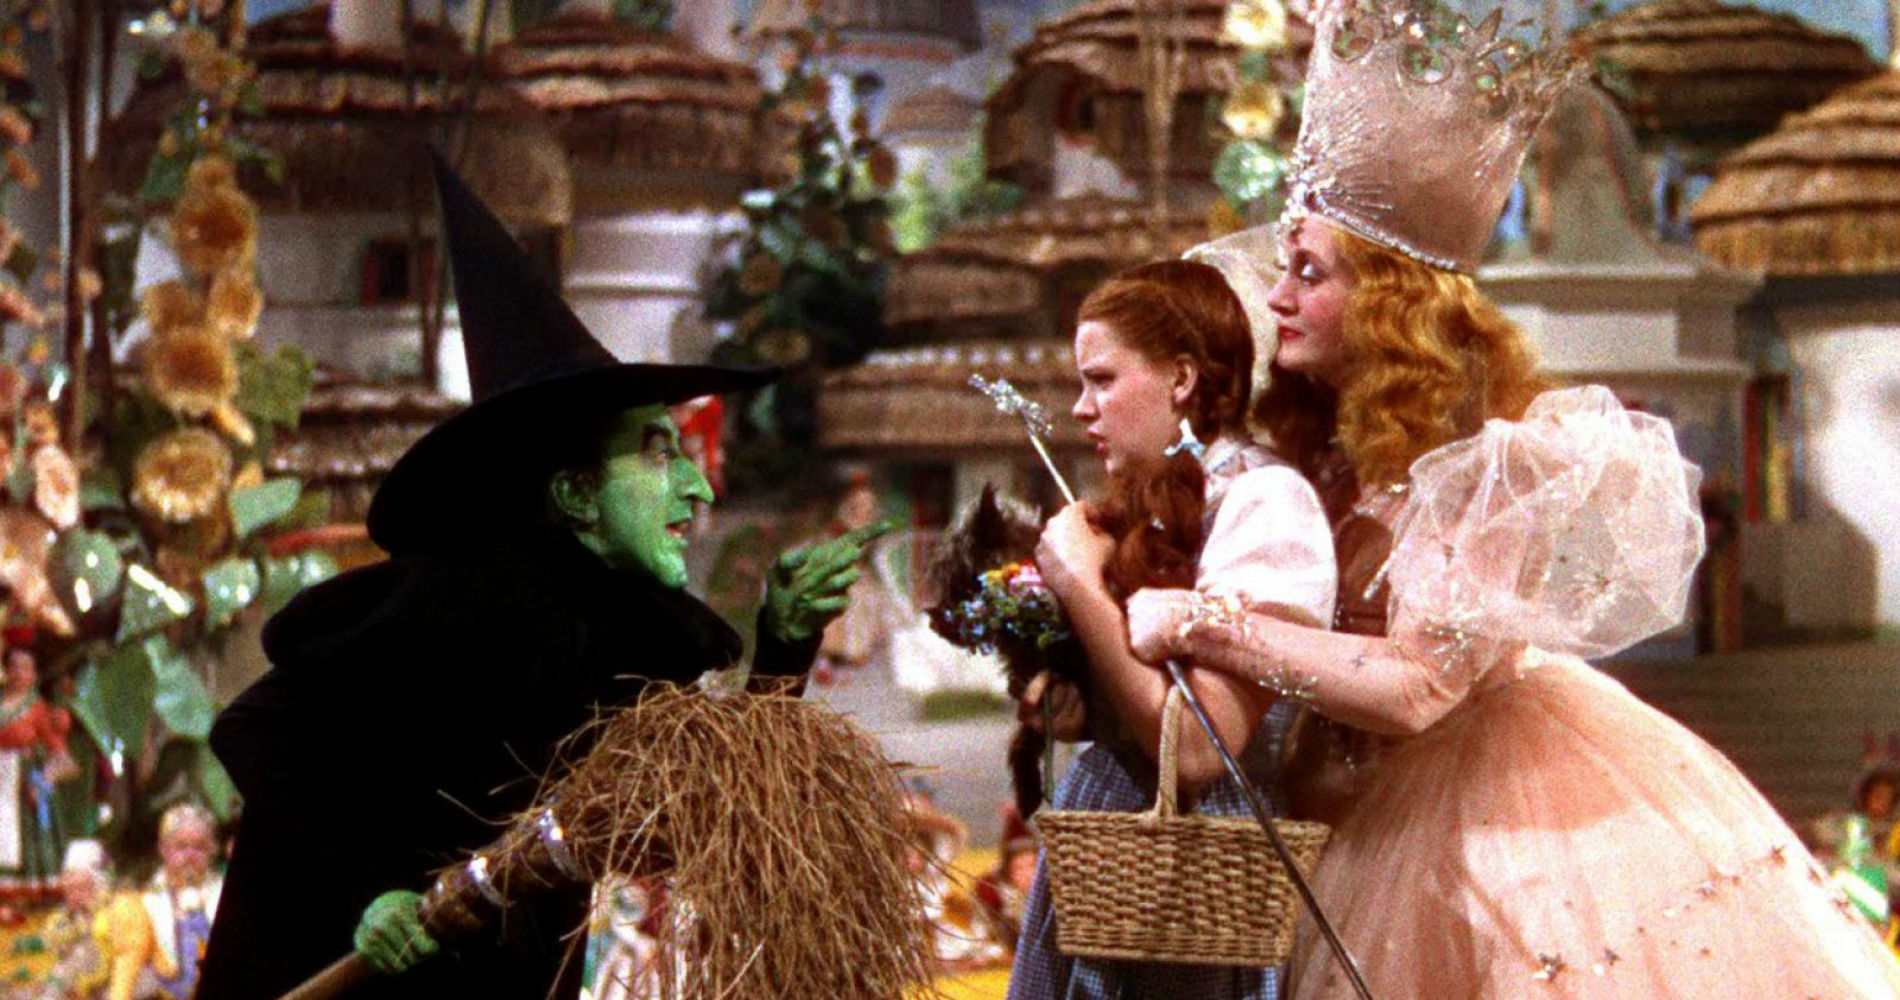 wizard of oz, good witch, bad witch, dorothy